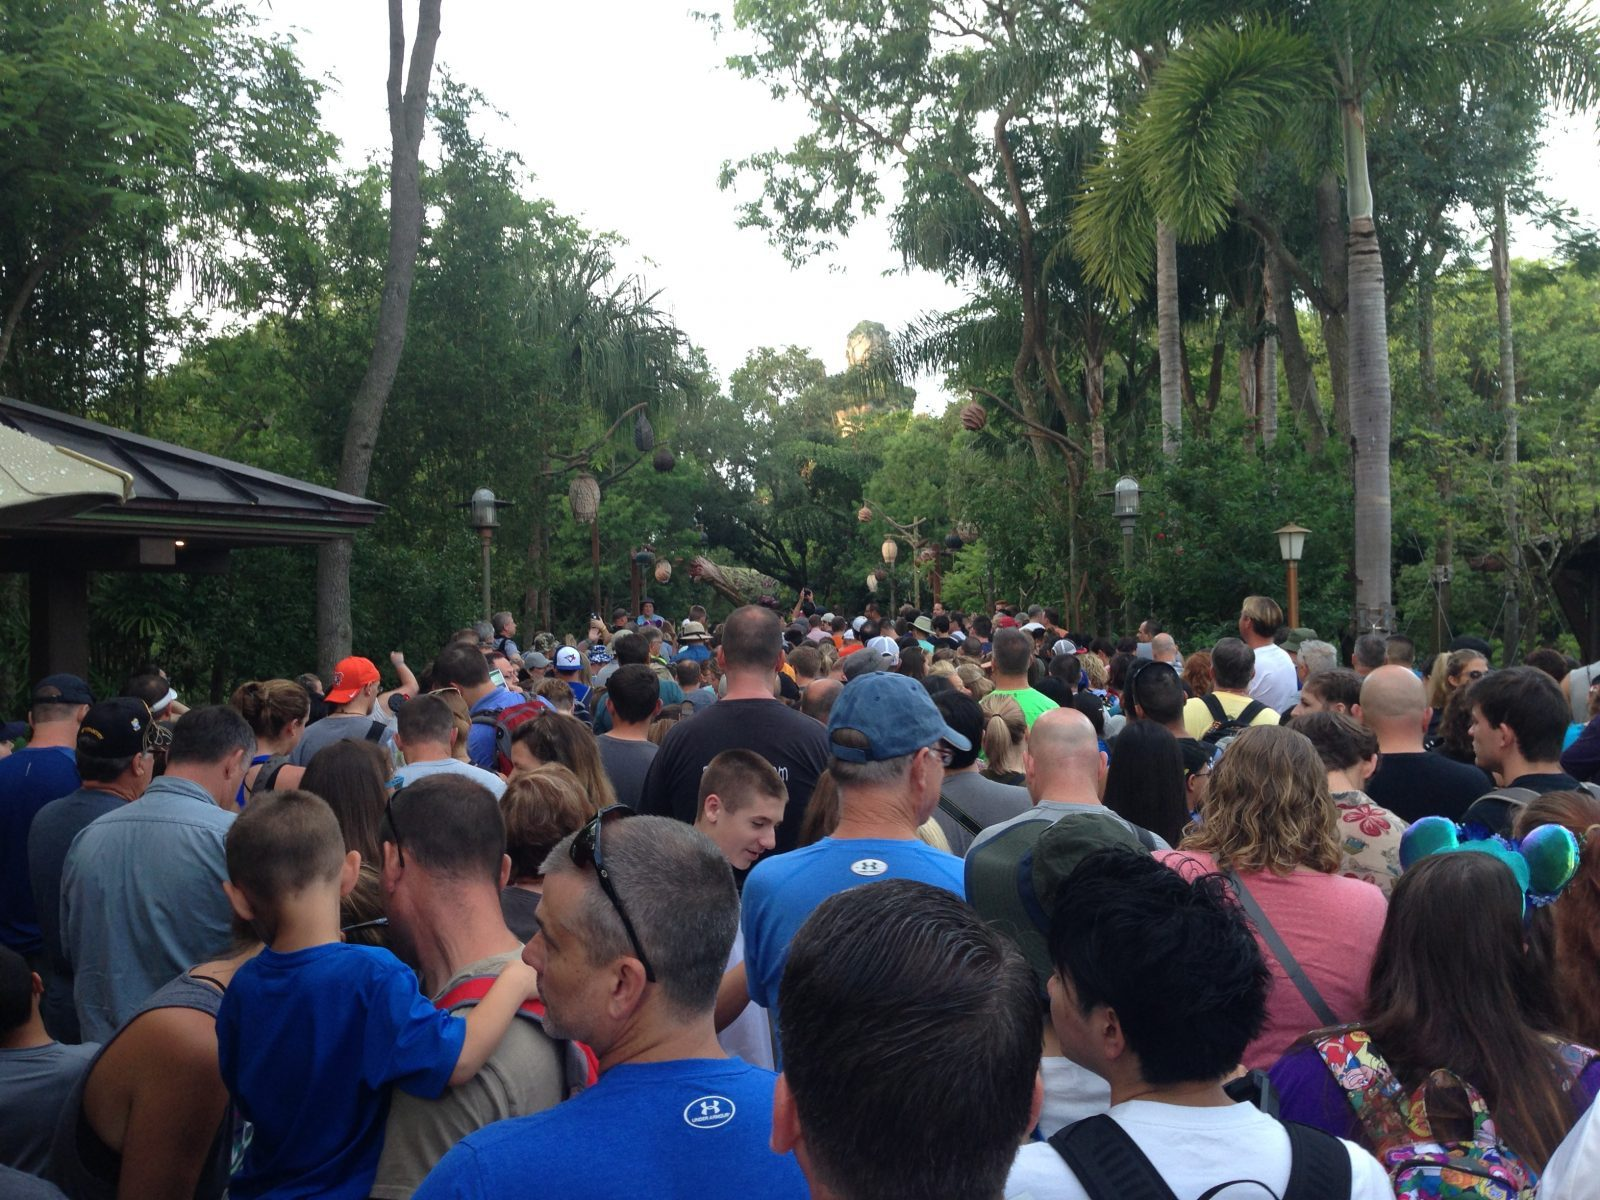 crowd of people trying to get into Pandora after it opened